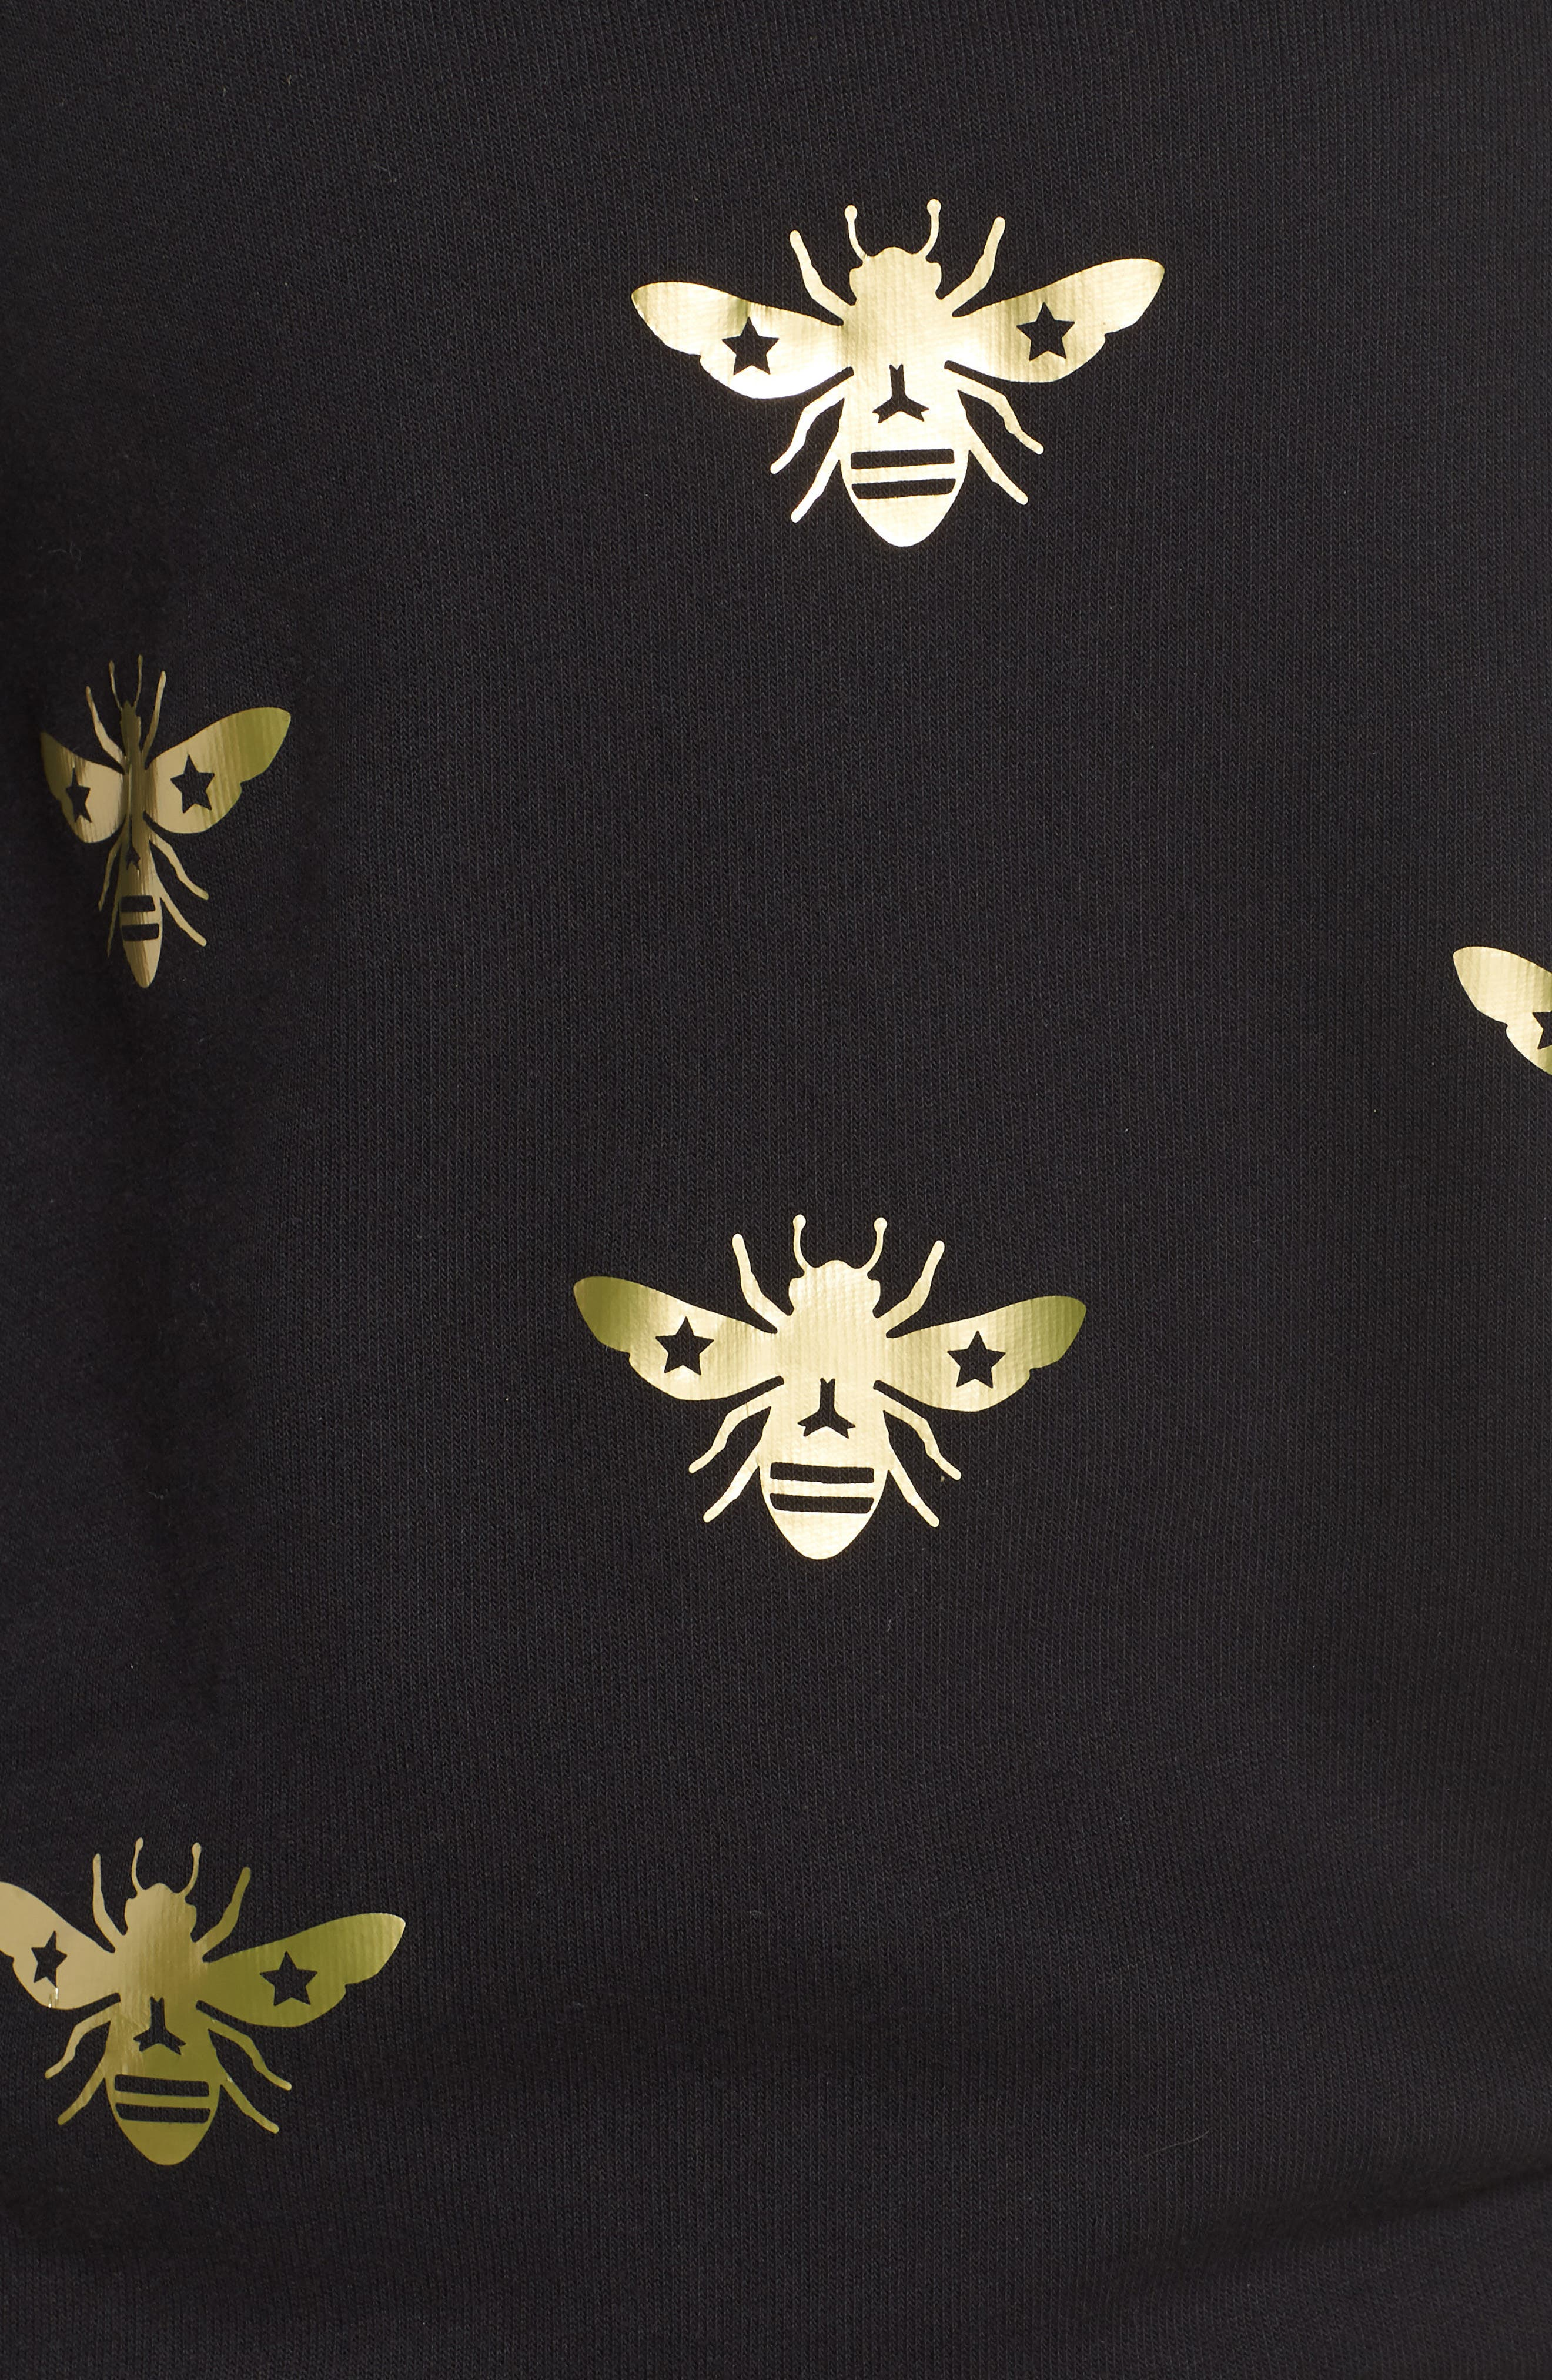 Bee Sweatshirt,                             Alternate thumbnail 5, color,                             Nero/ Gold